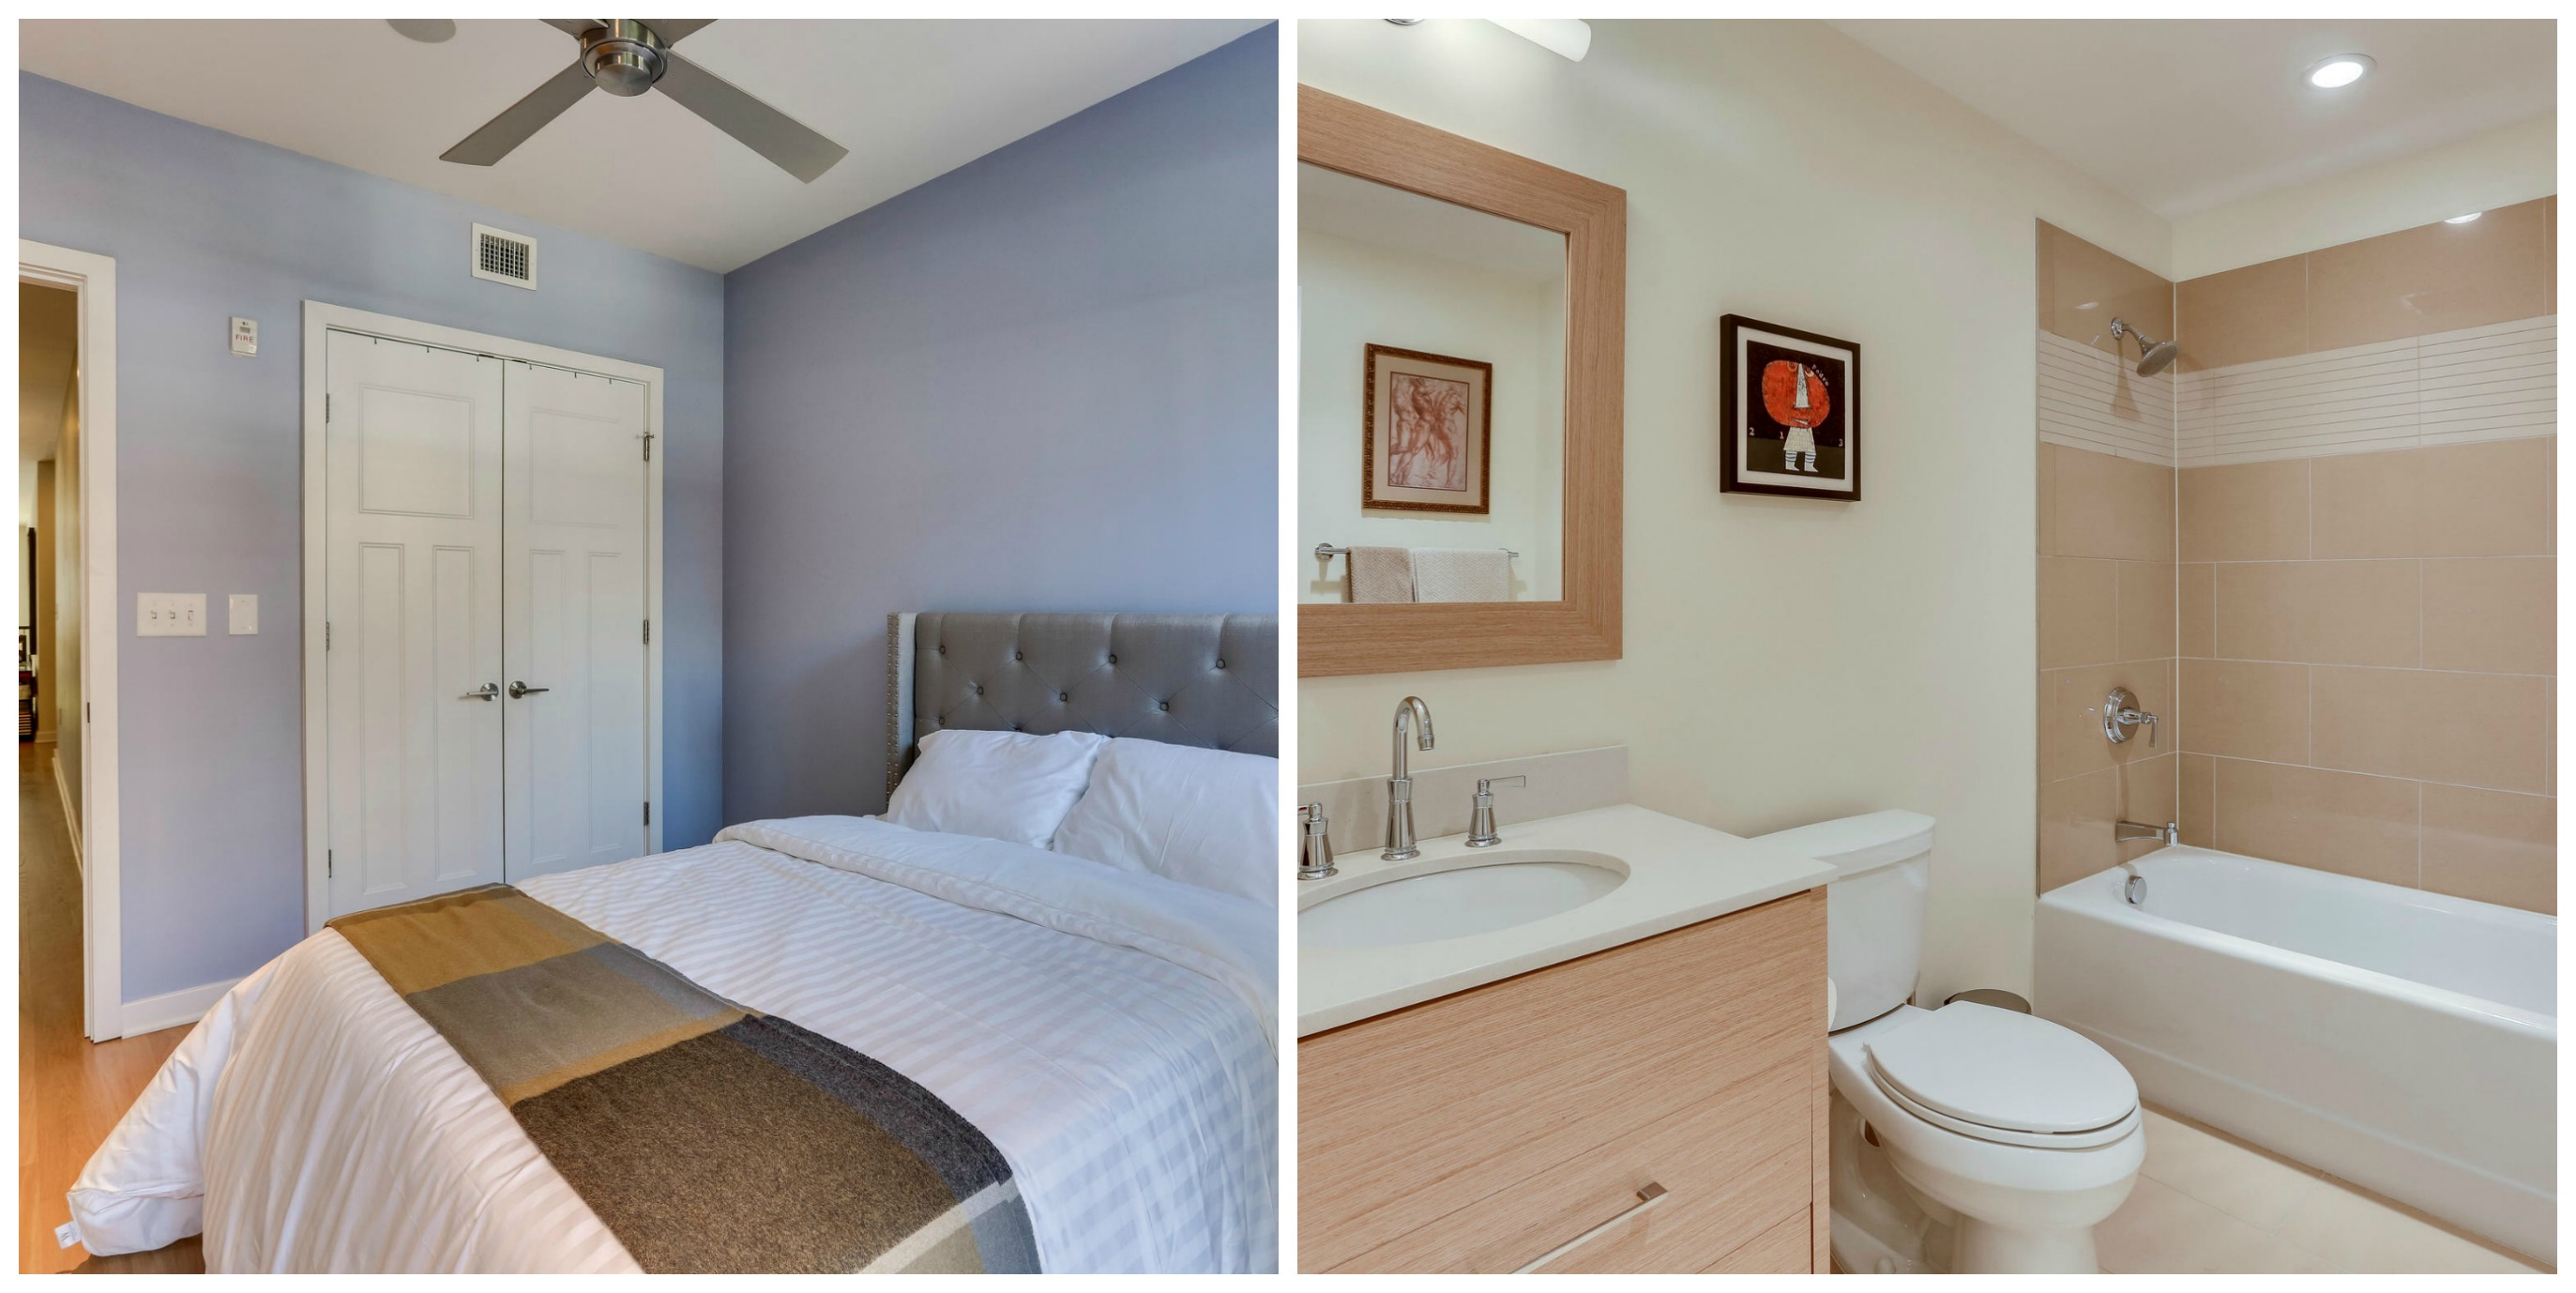 1700 Clarendon #121_Rosslyn_Guest Room and Bath